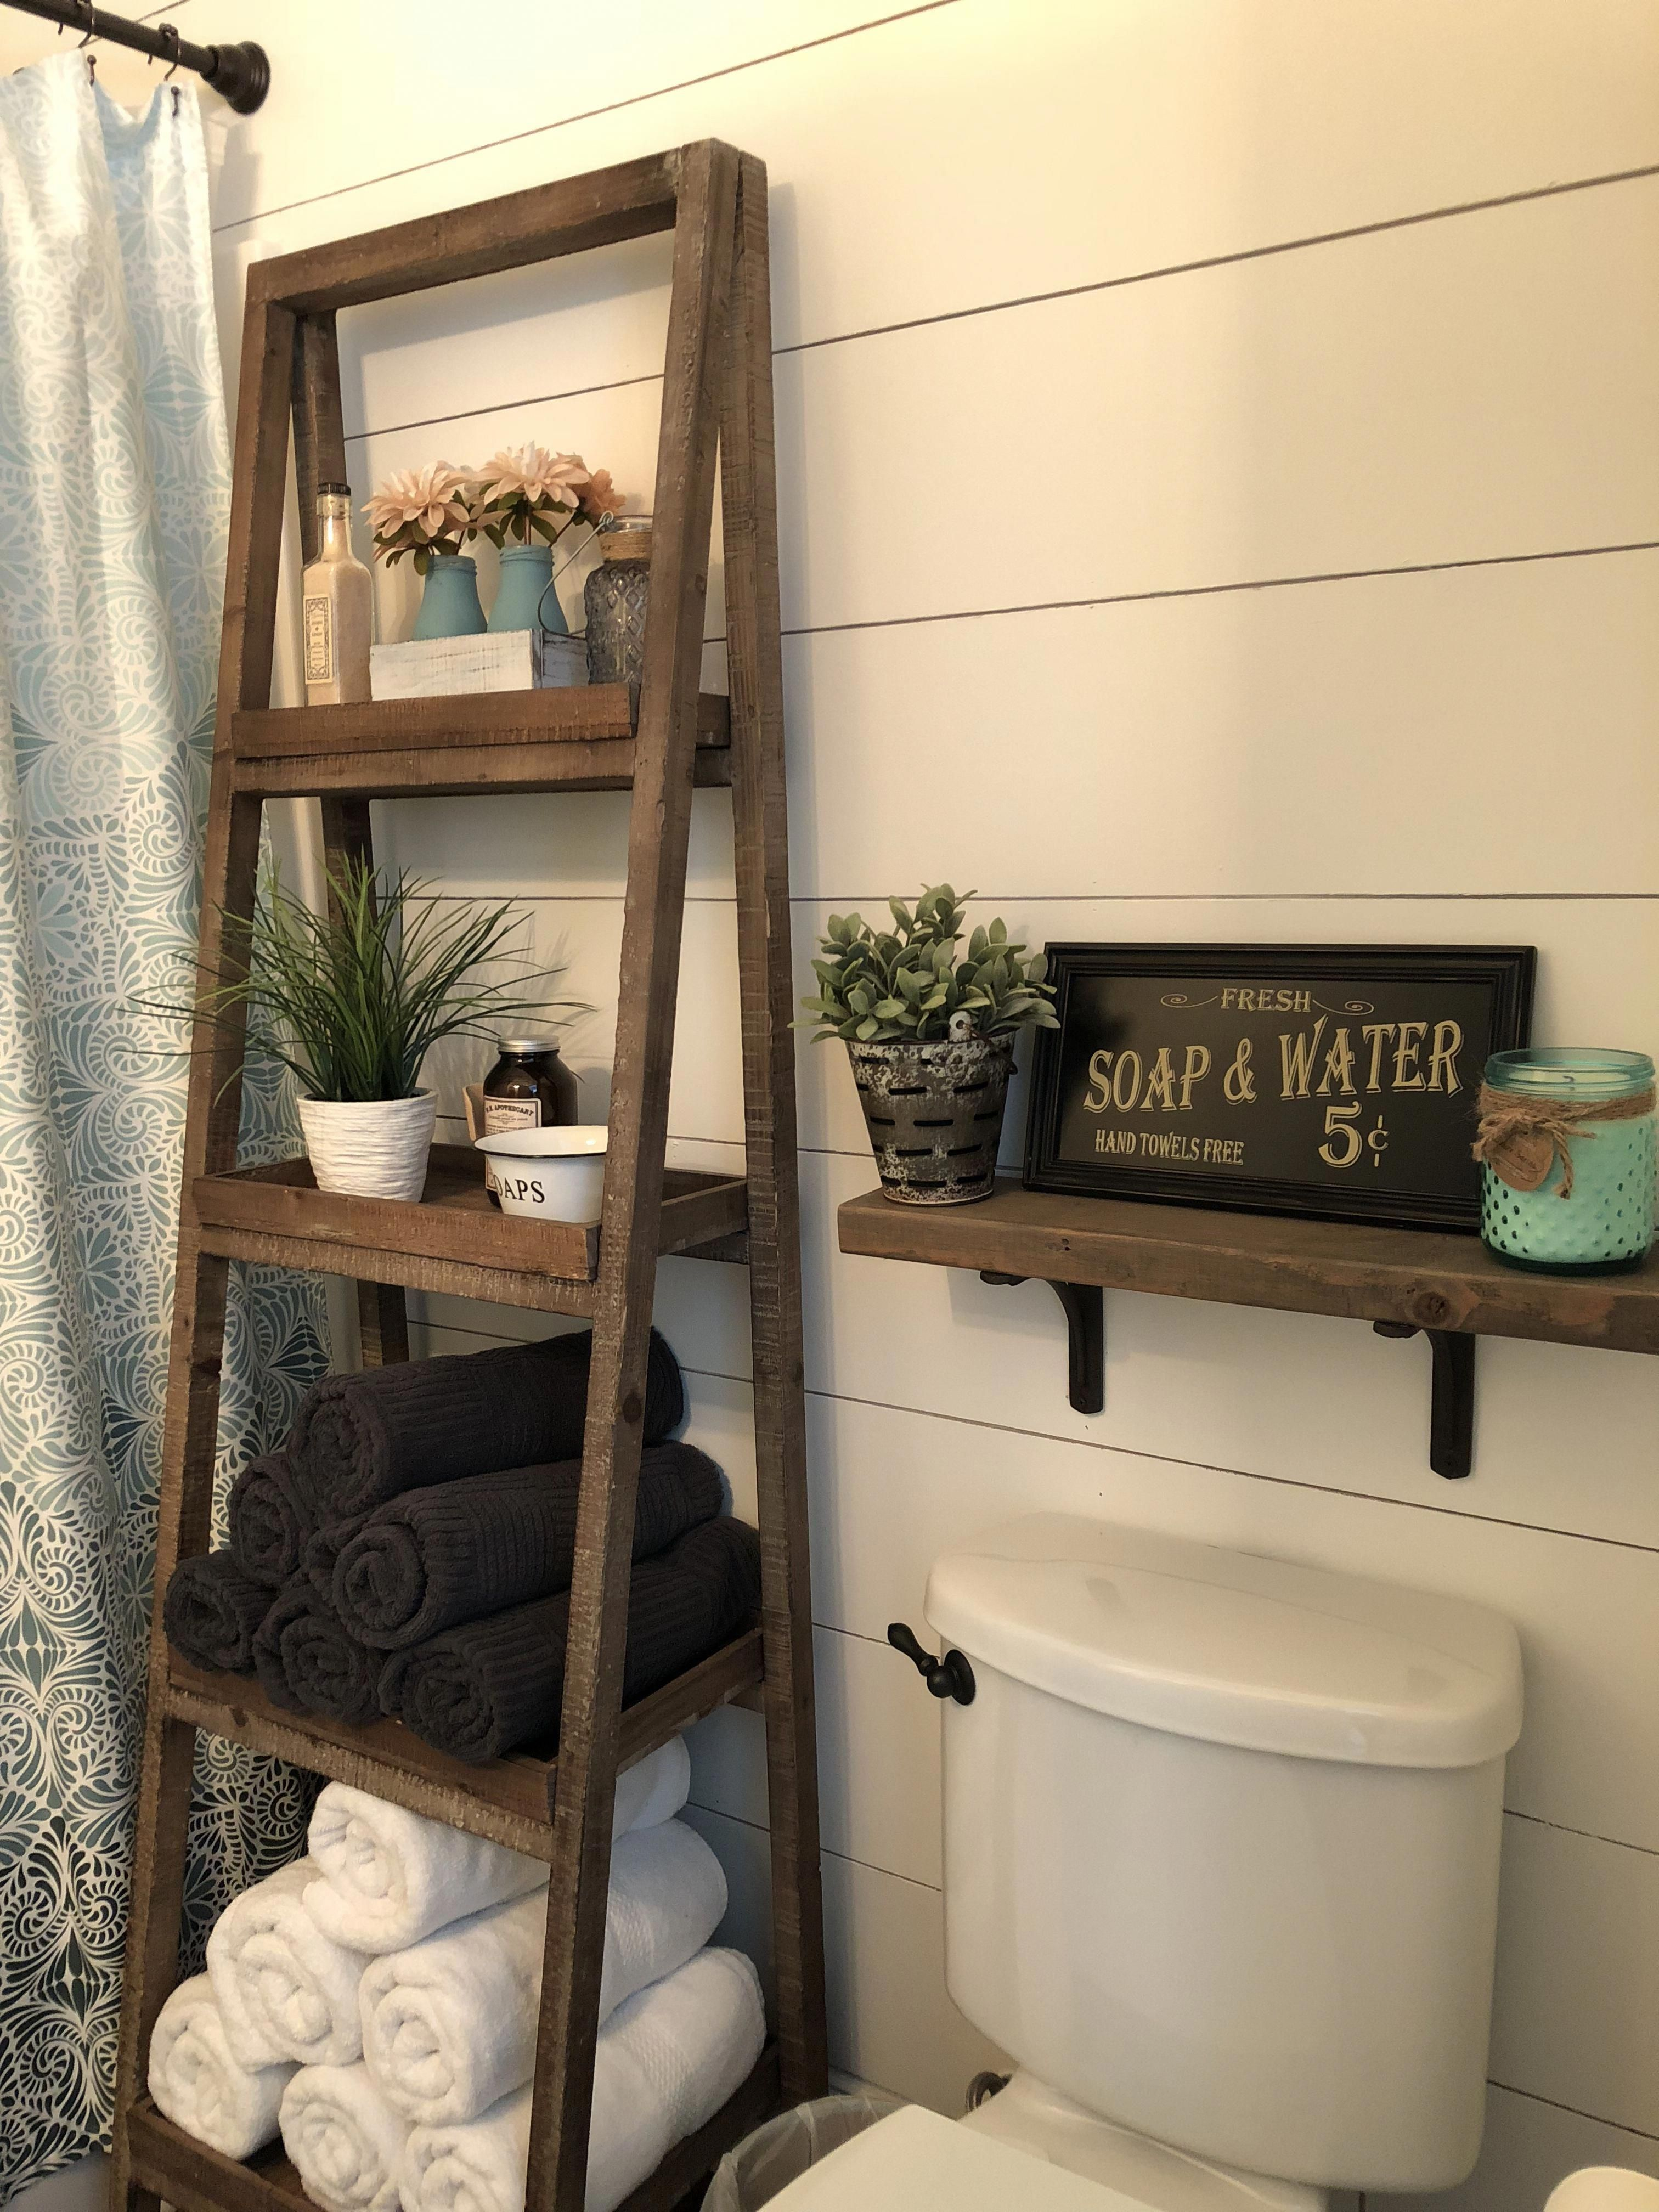 Bathroom In 2020 With Images Small Bathroom Decor Farmhouse Bathroom Decor Diy Bathroom Decor